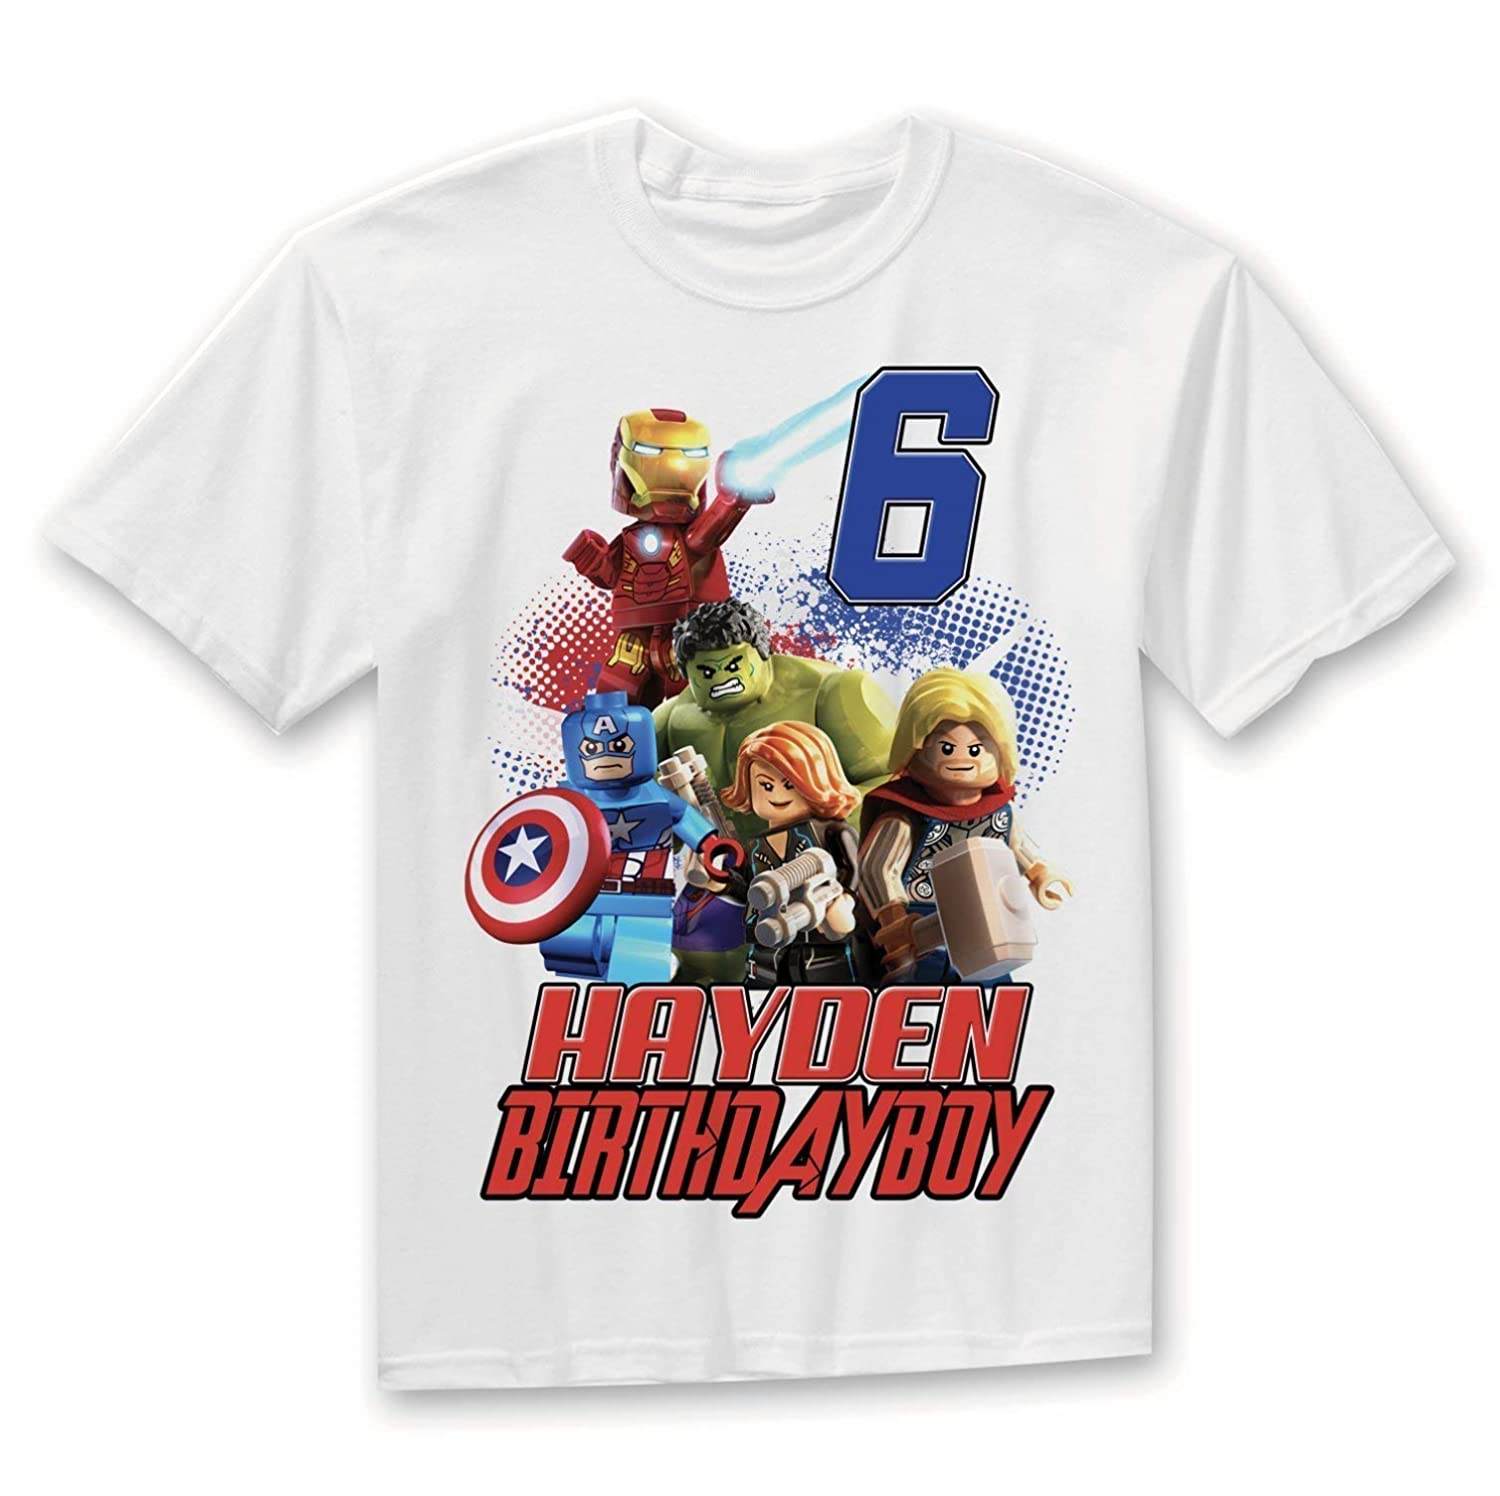 LEGO Avengers birthday shirt, custom toddler shirt, birthday gift, lego birthday shirt Legoland Party t shirt